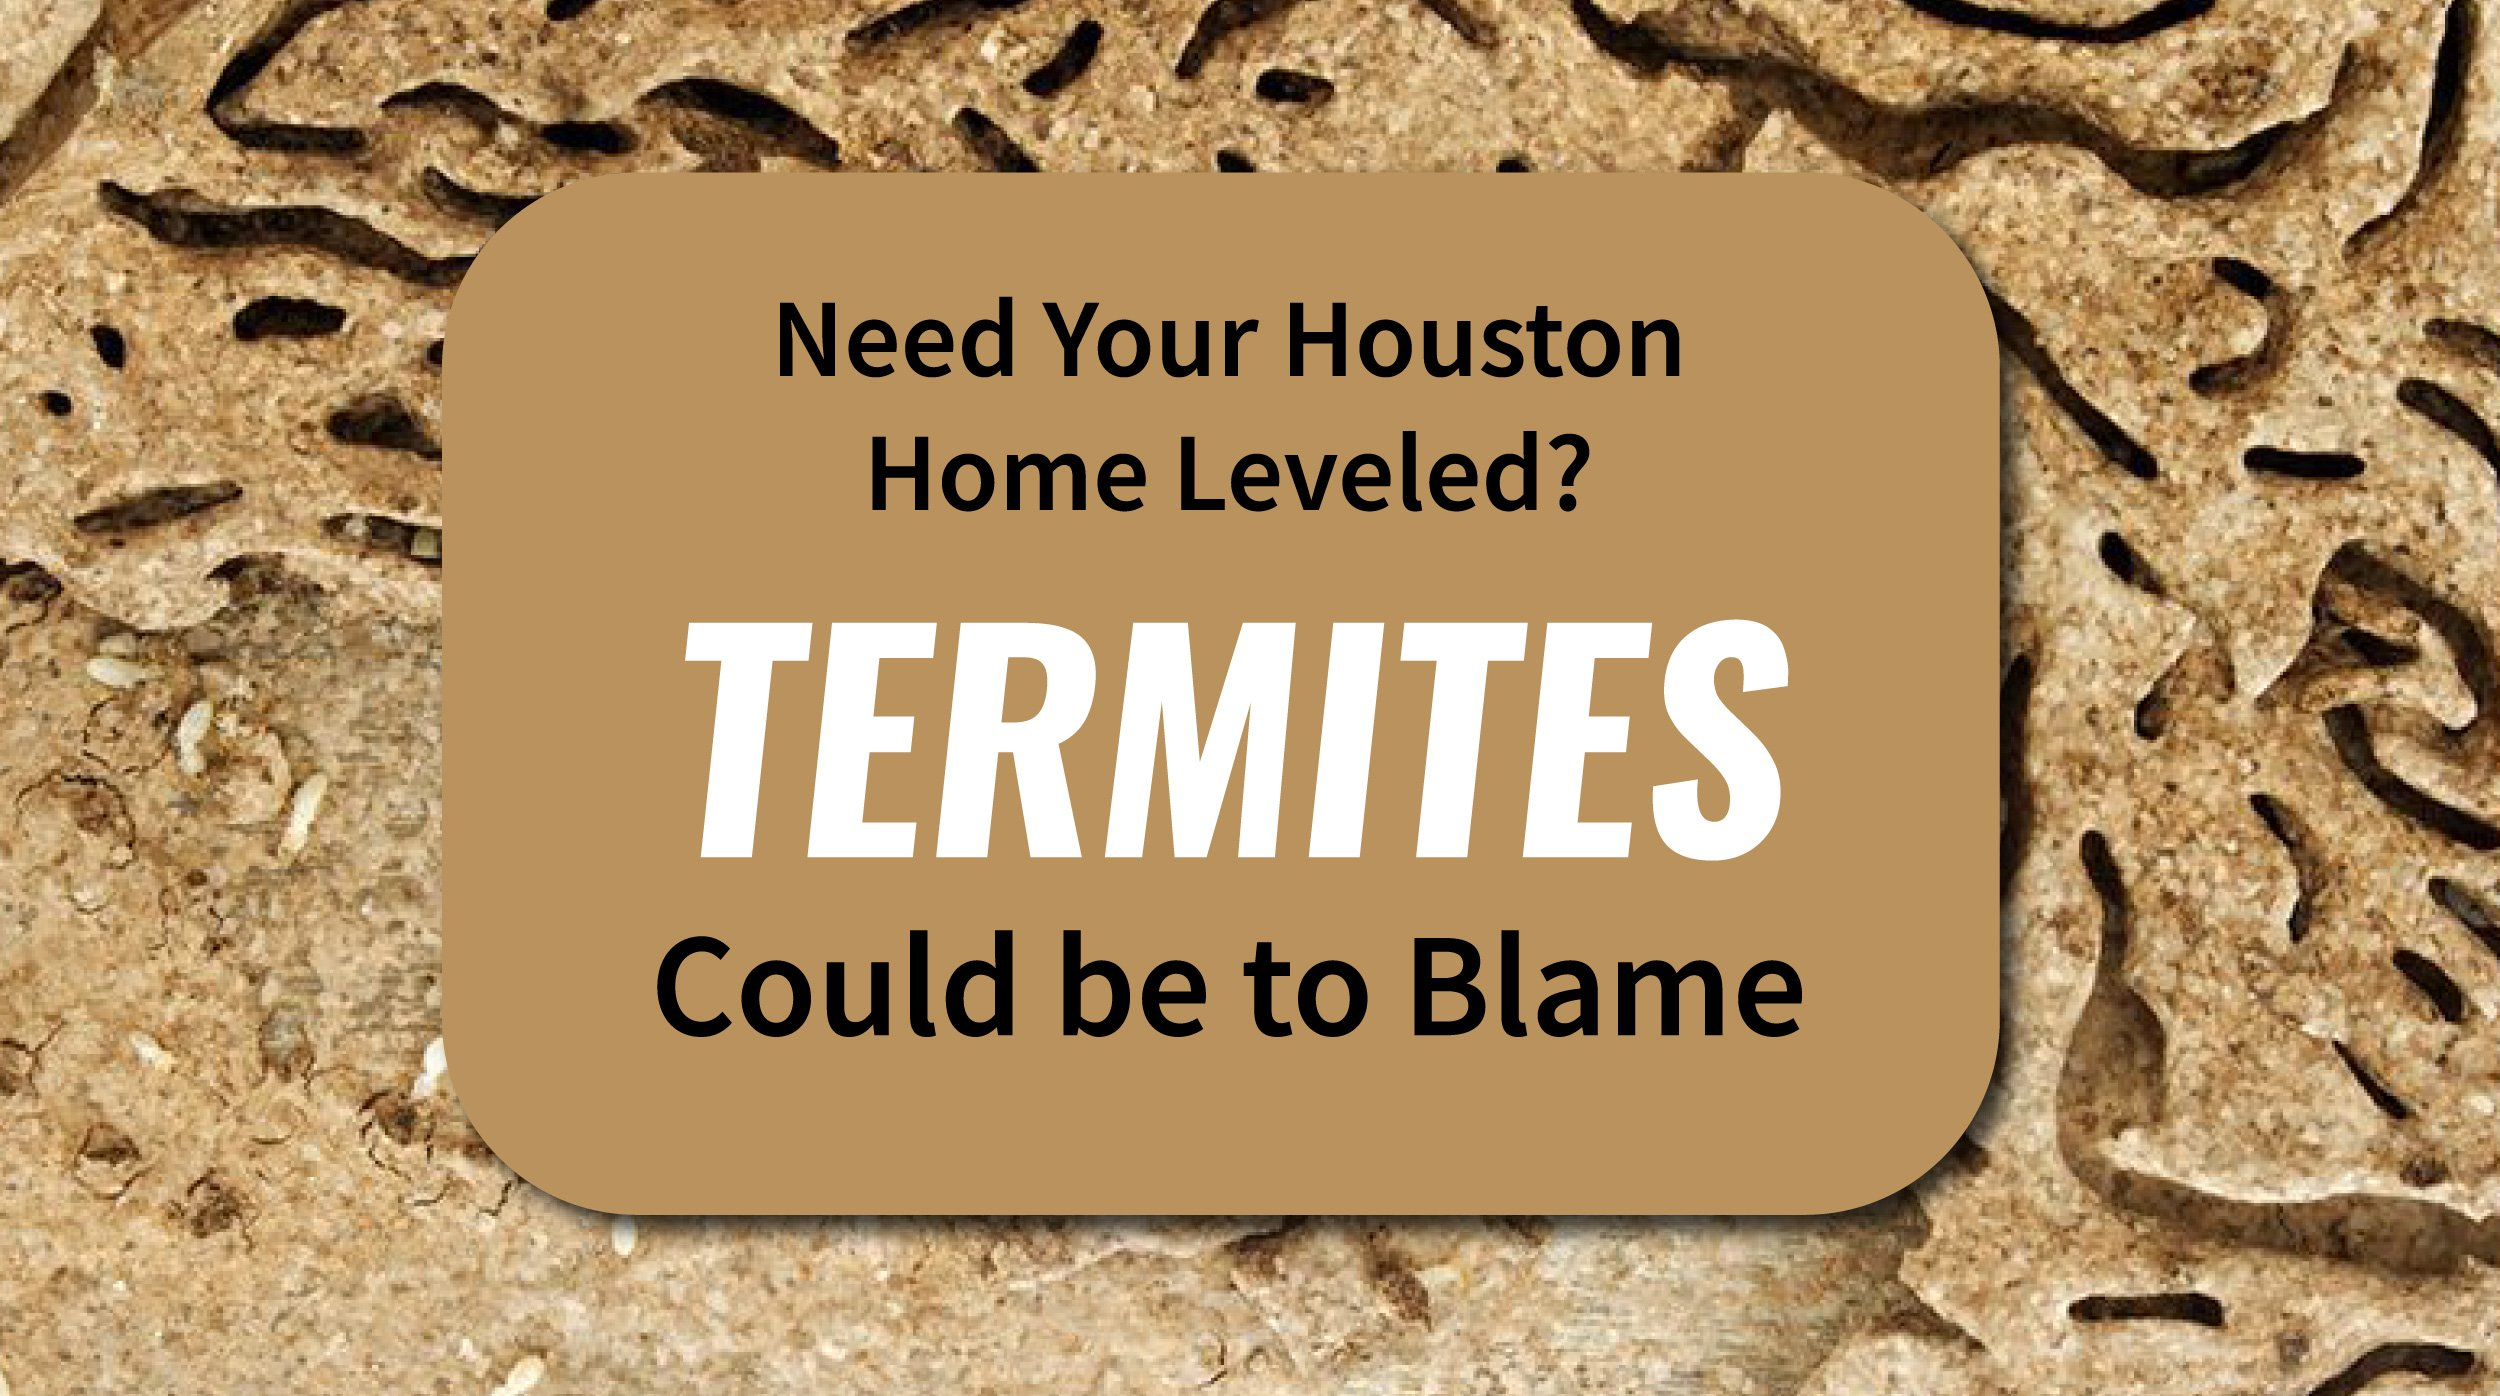 Need Your Houston Home Leveled? Termites Could be to Blame